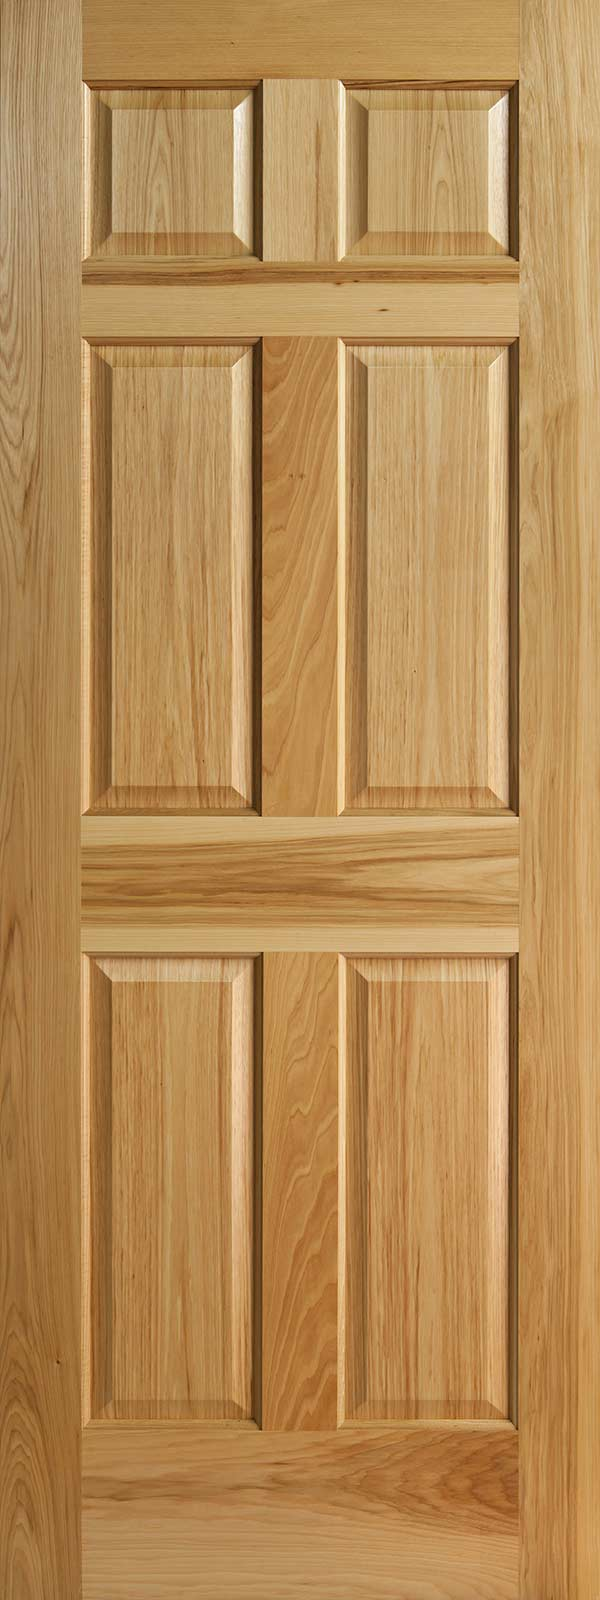 Hickory 6 panel interior doors with raised panels for 6 panel doors